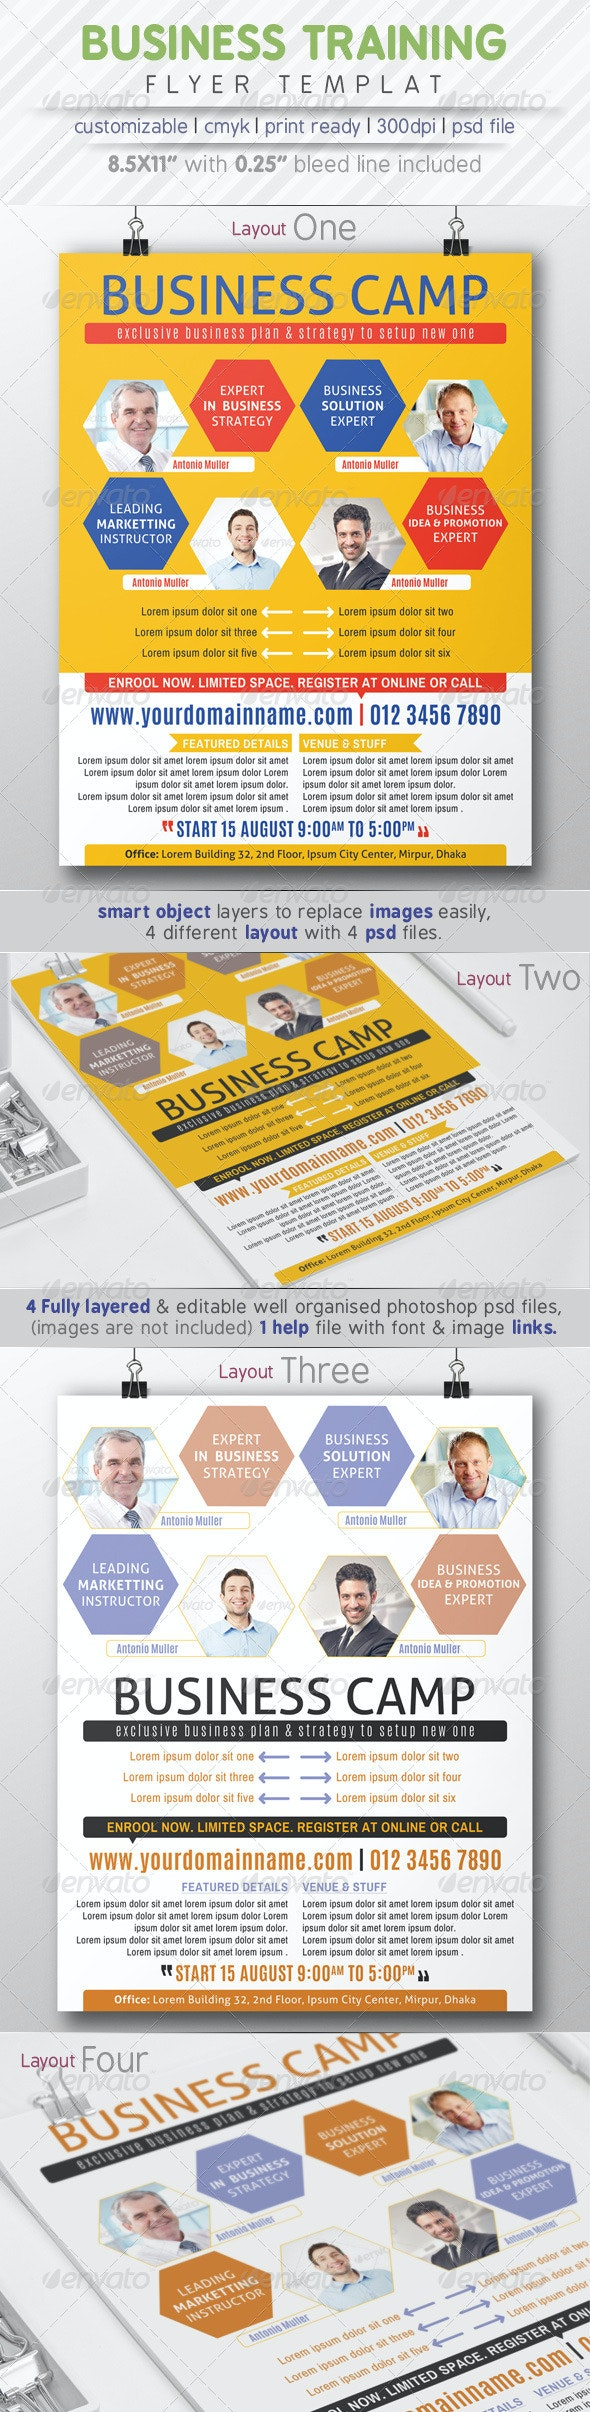 Business Training Flyer Ads - Corporate Flyers